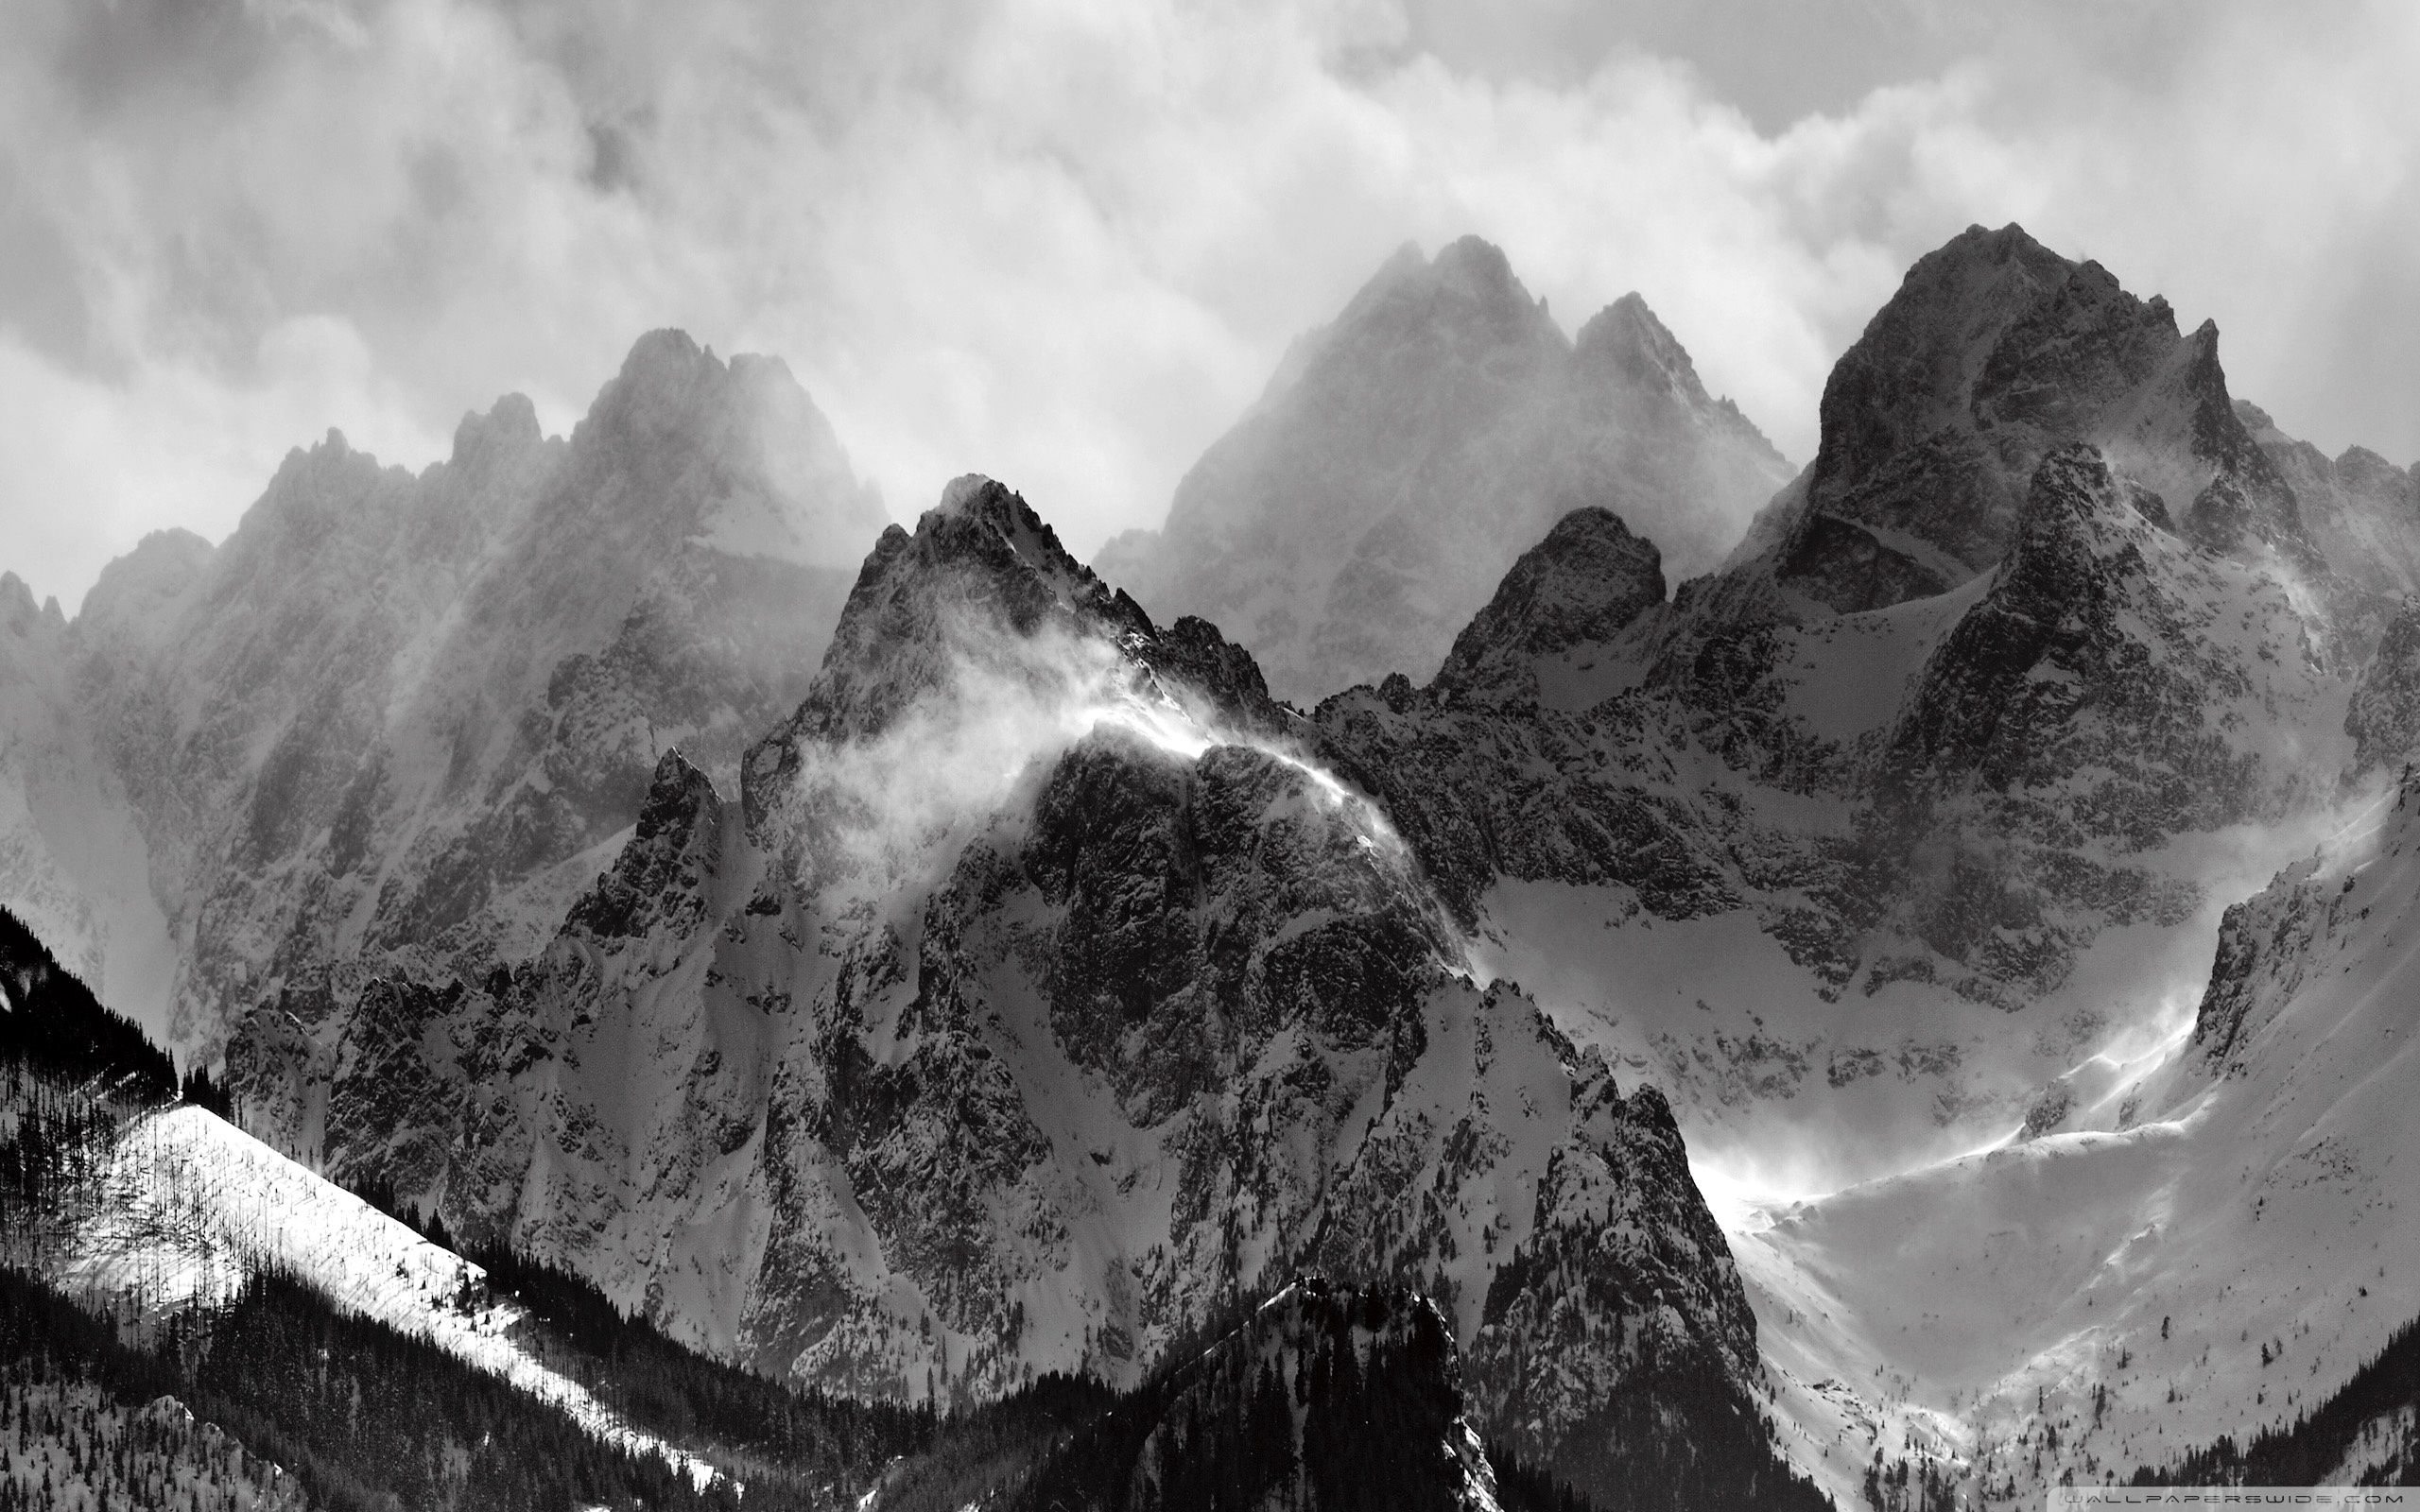 Misty Mountains Hd Desktop Wallpaper Widescreen High Mountain Wallpaper Black And White Wallpaper Nature Wallpaper